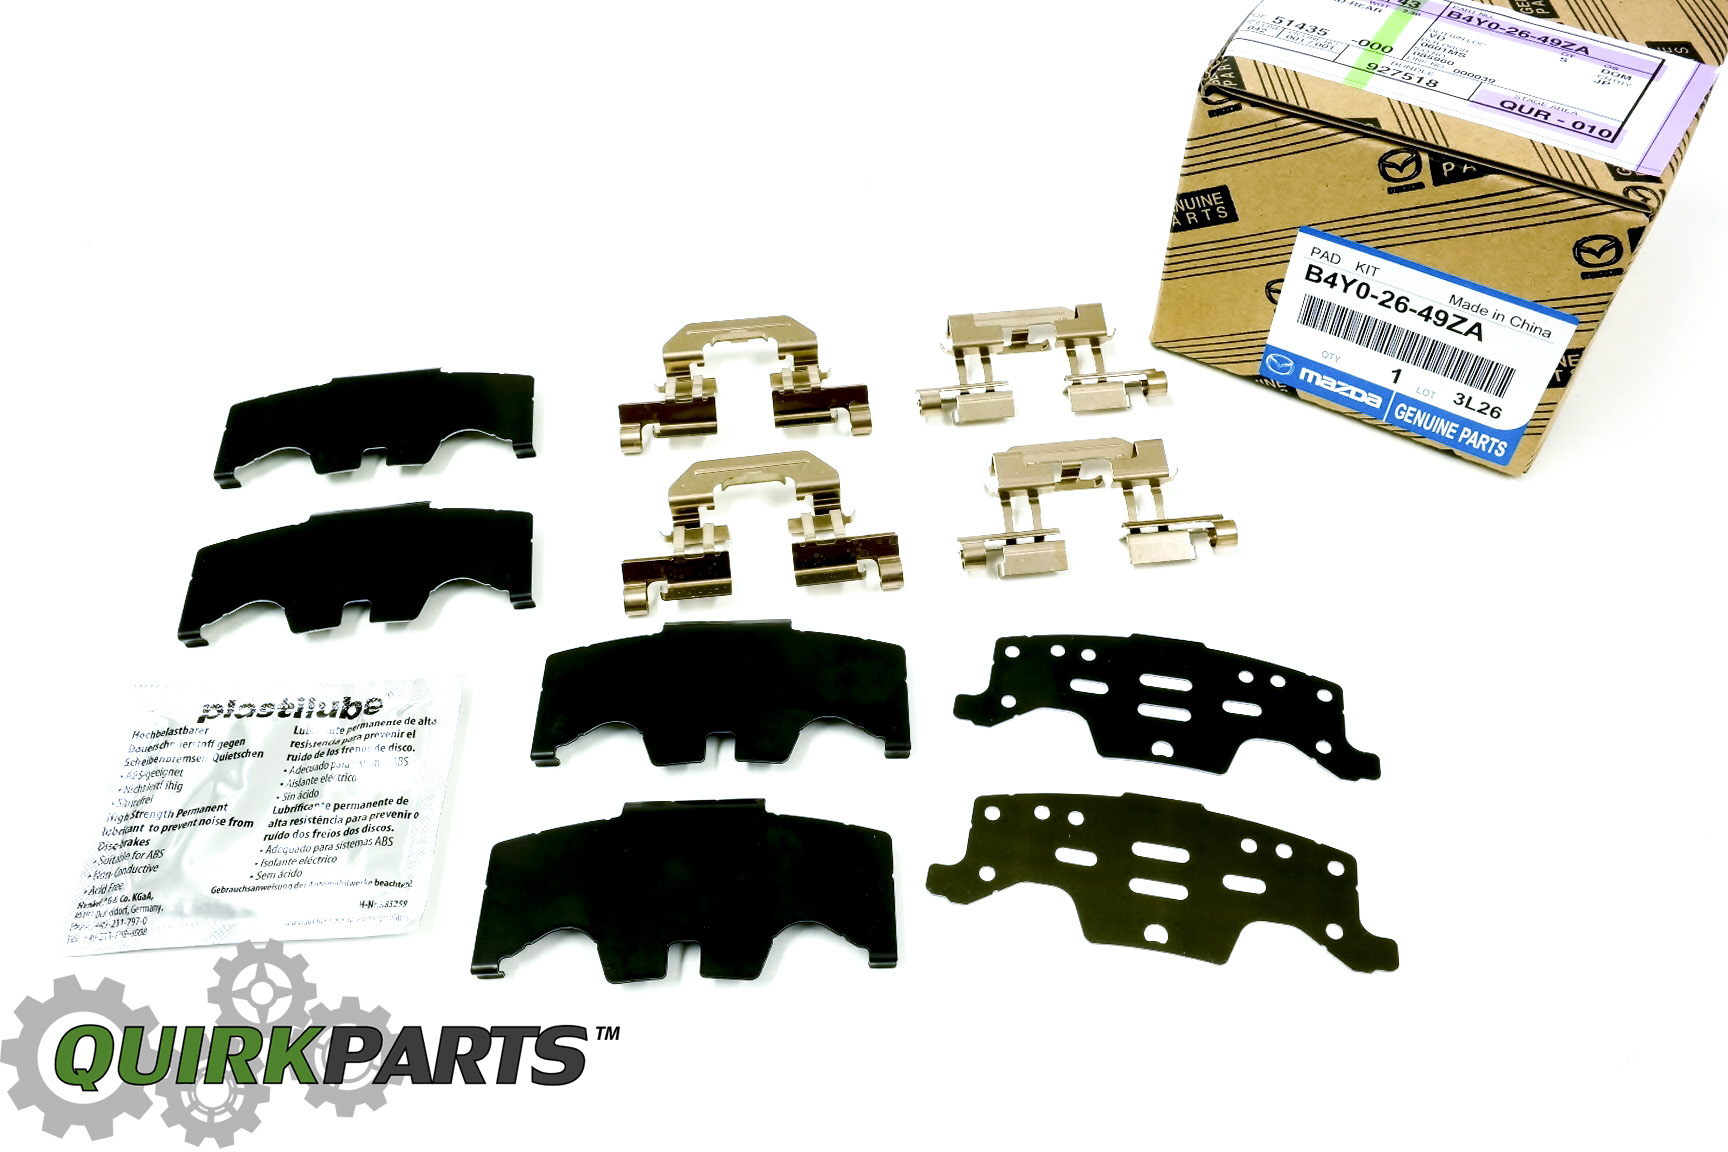 2014 2015 mazda 3 rear caliper attachment brake pad hardware kit oem ebay. Black Bedroom Furniture Sets. Home Design Ideas